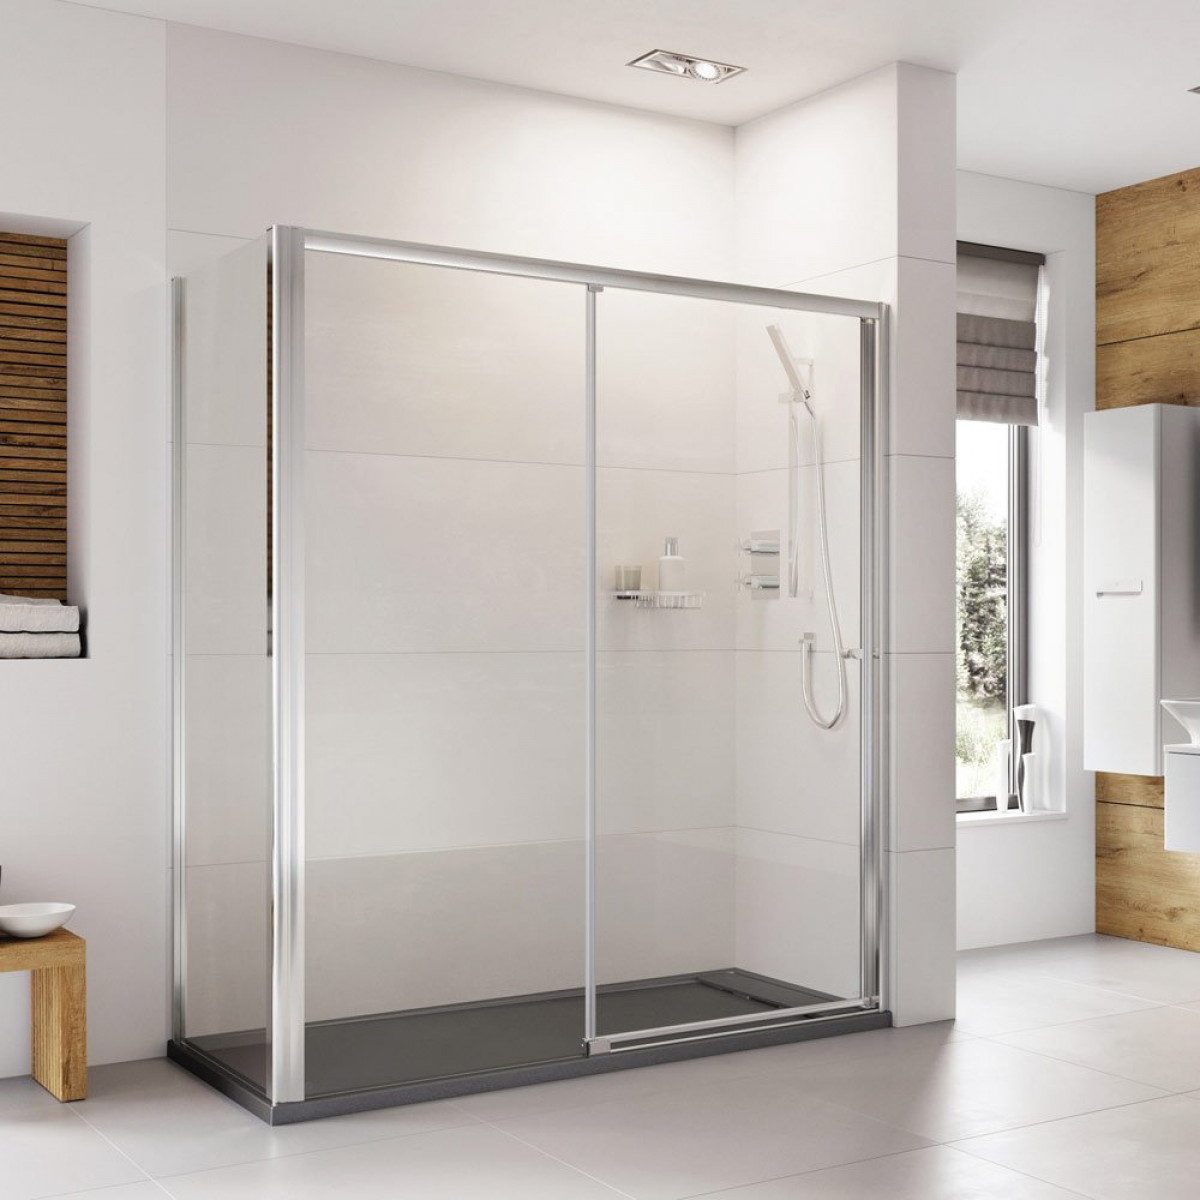 Roman Haven 1400mm Level Access Right Hand Sliding Shower